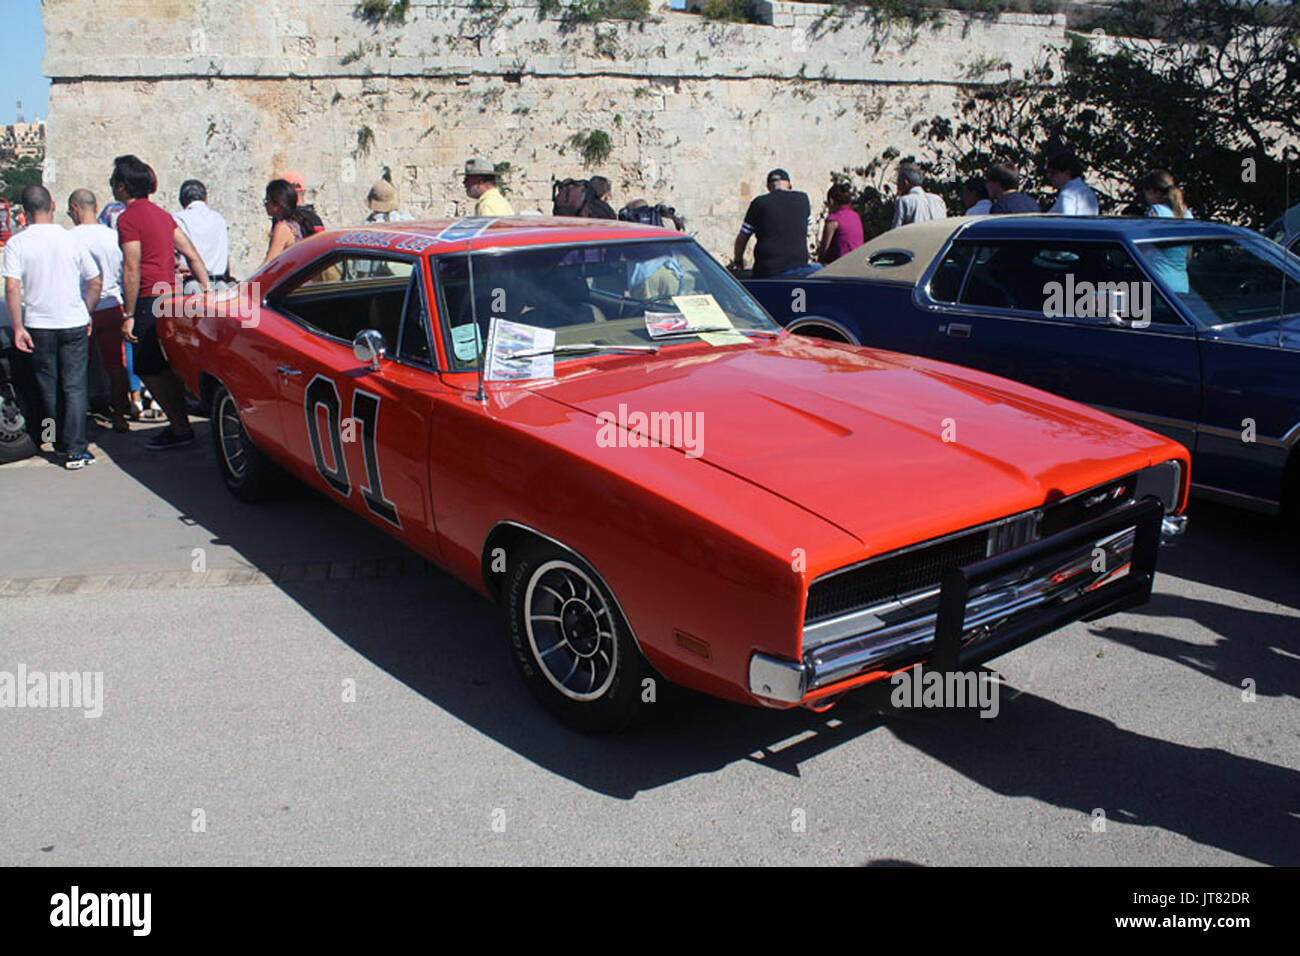 dodge charger 1969 stock photos dodge charger 1969 stock images alamy. Black Bedroom Furniture Sets. Home Design Ideas